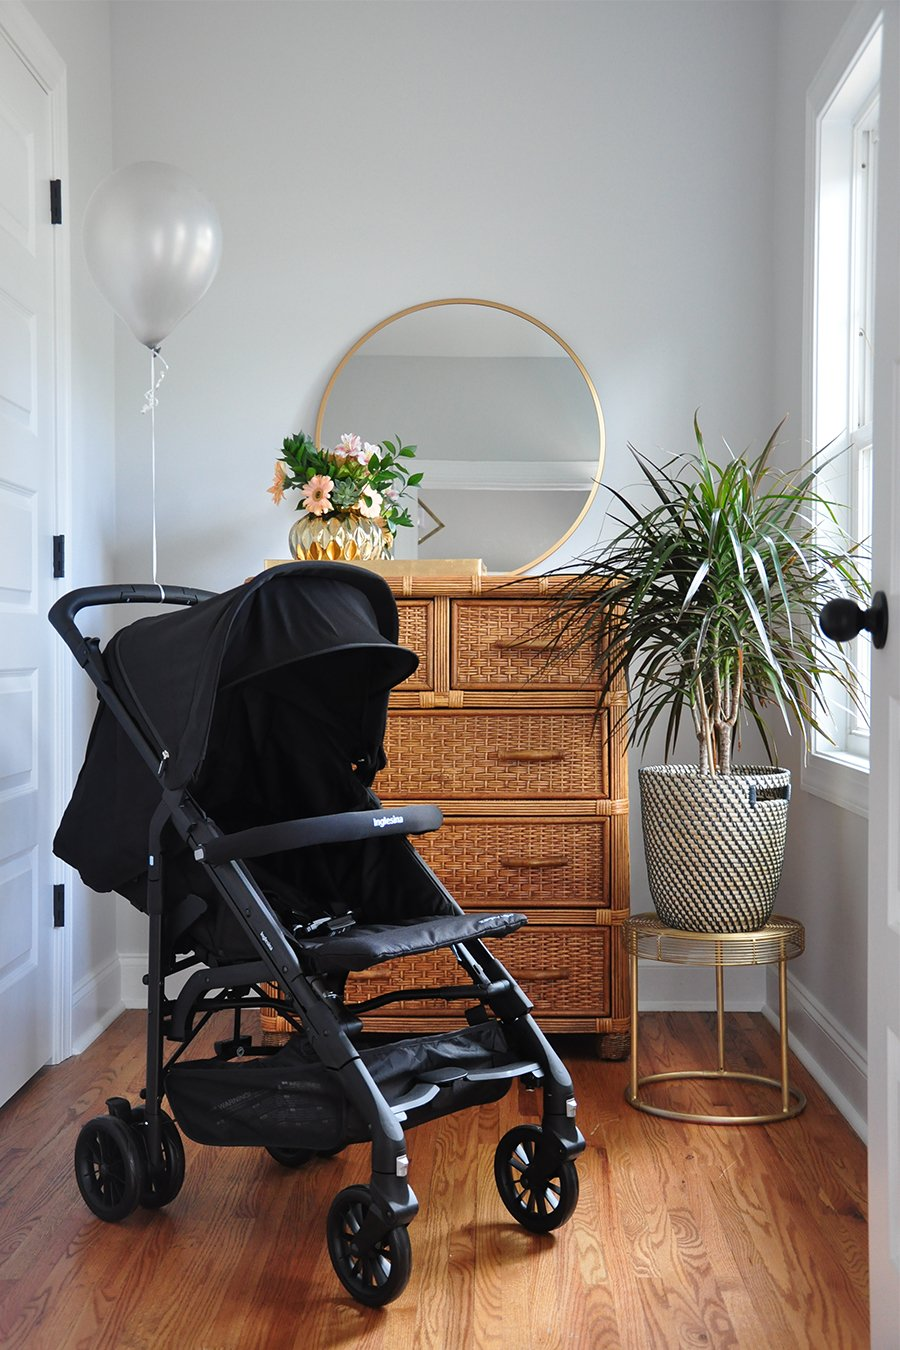 How to Choose a Stroller (& Why I Chose Inglesina Zippy Light)